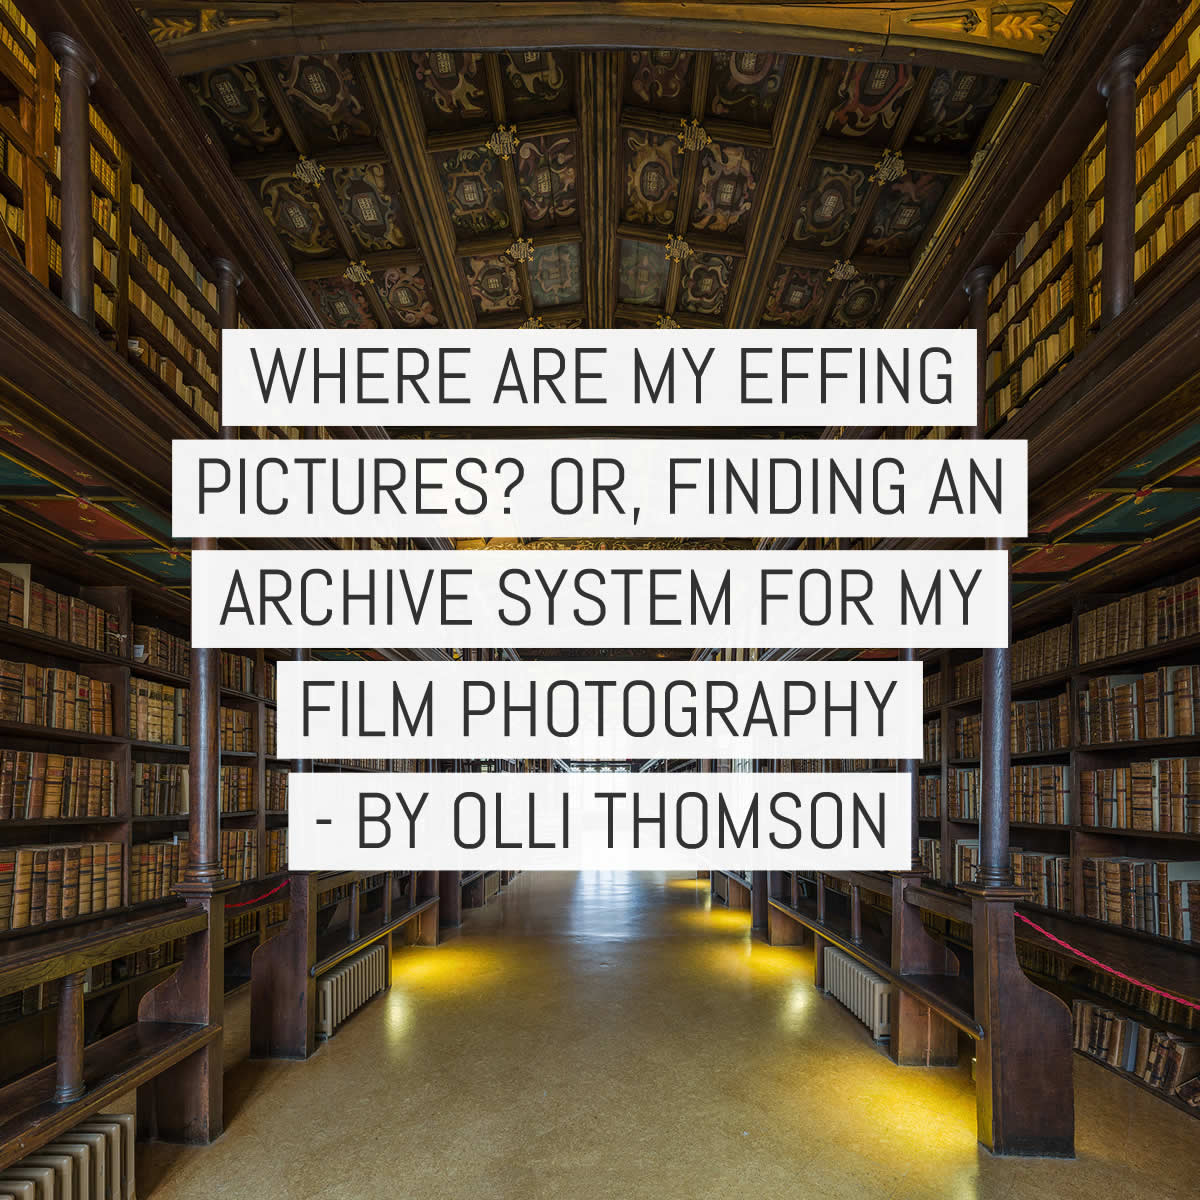 Where are my effing pictures? Or, finding an archive system for my film photography - by Olli Thomson